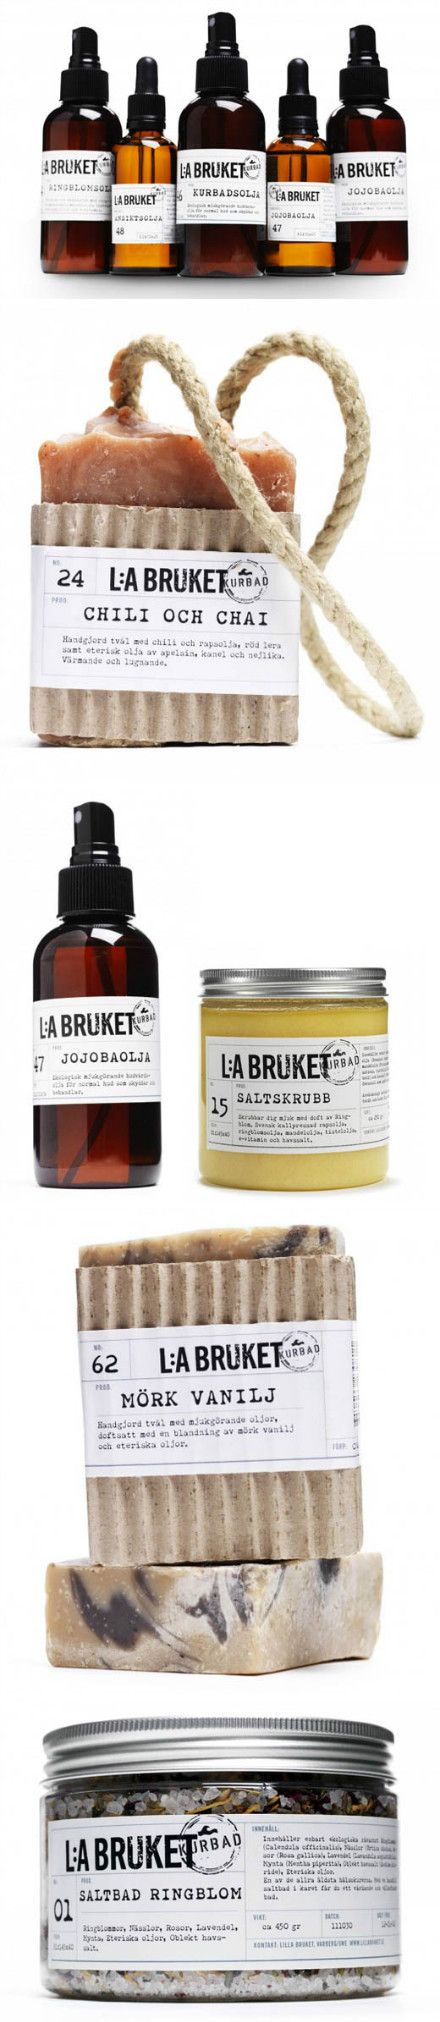 L:a Bruket,手工皂及spa产品,来自瑞典。 Great looking simple product #packaging PD